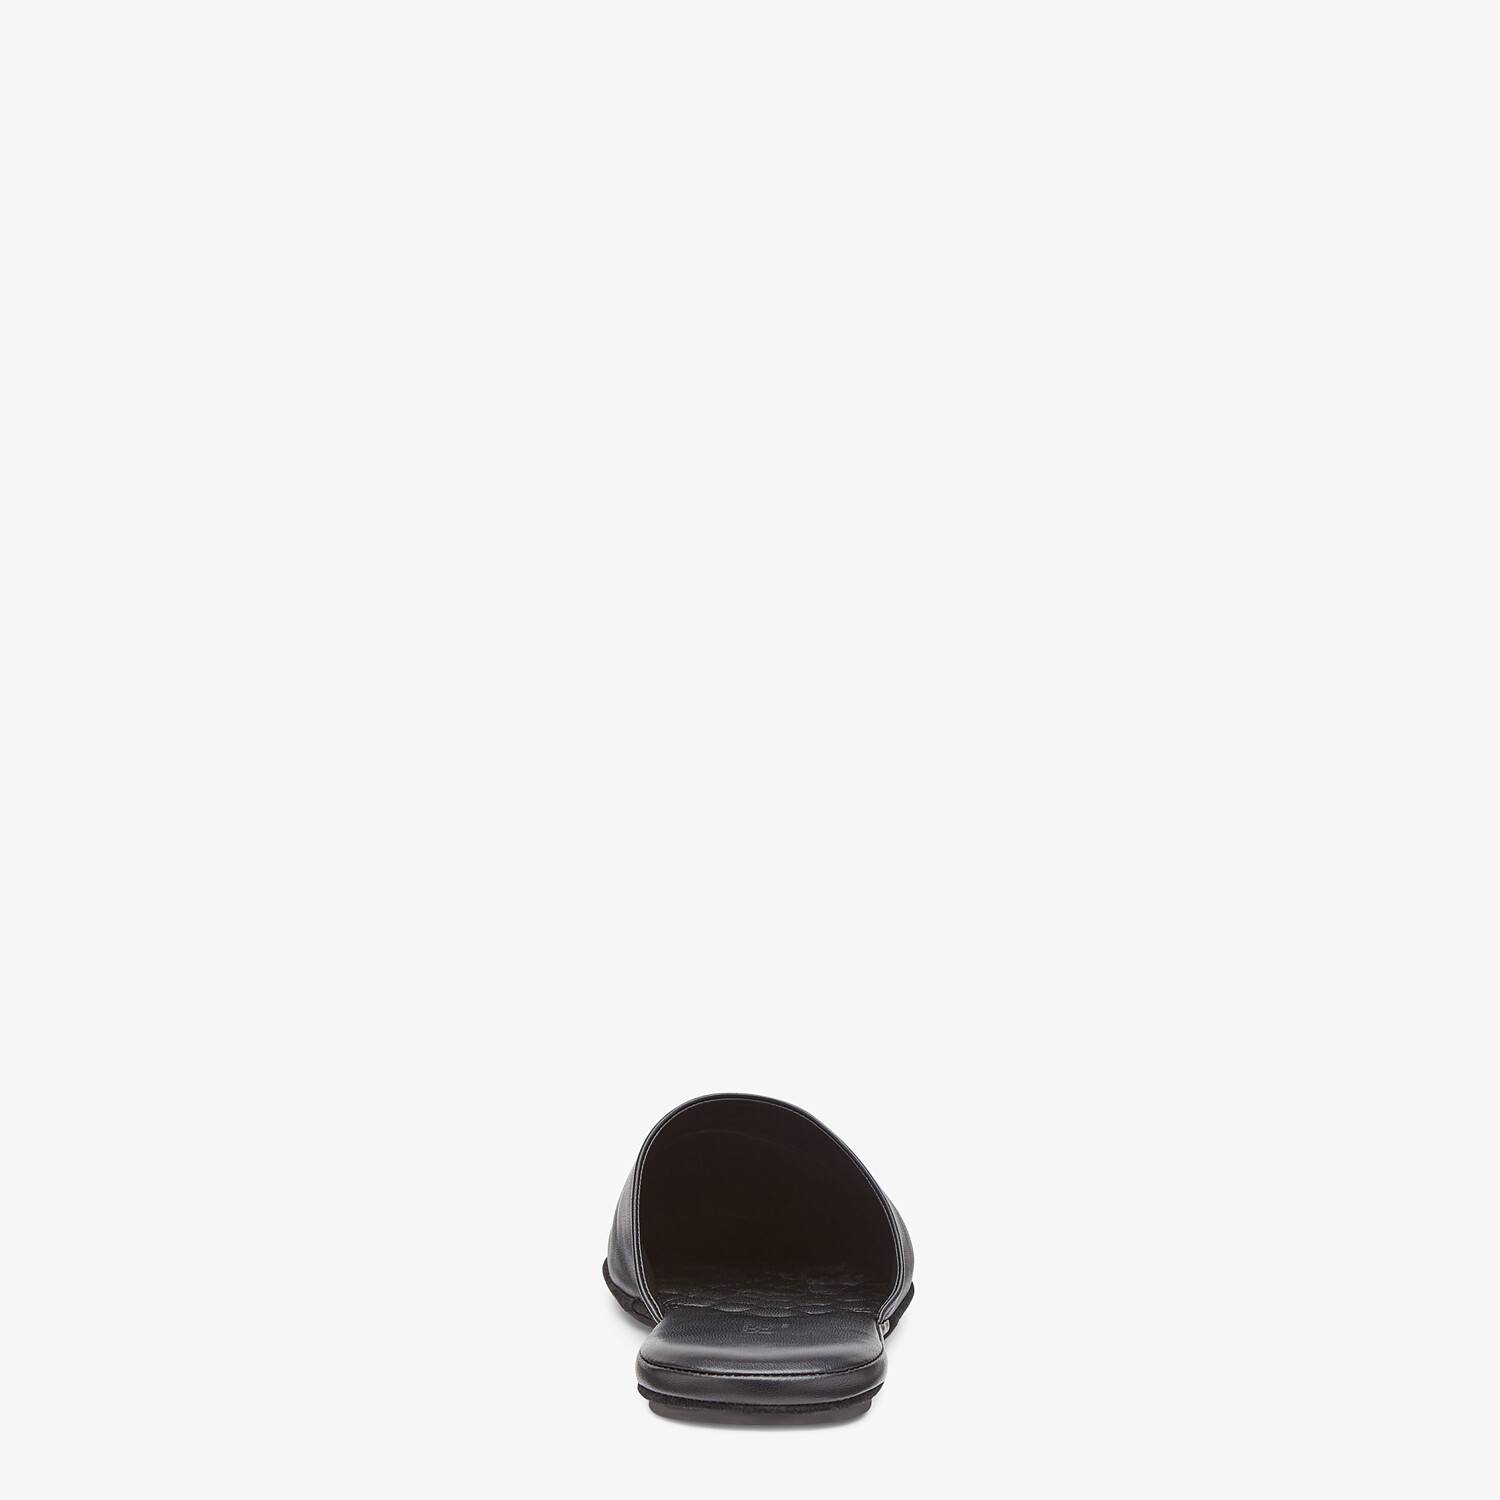 FENDI SLIPPERS - Black nappa leather mules - view 3 detail